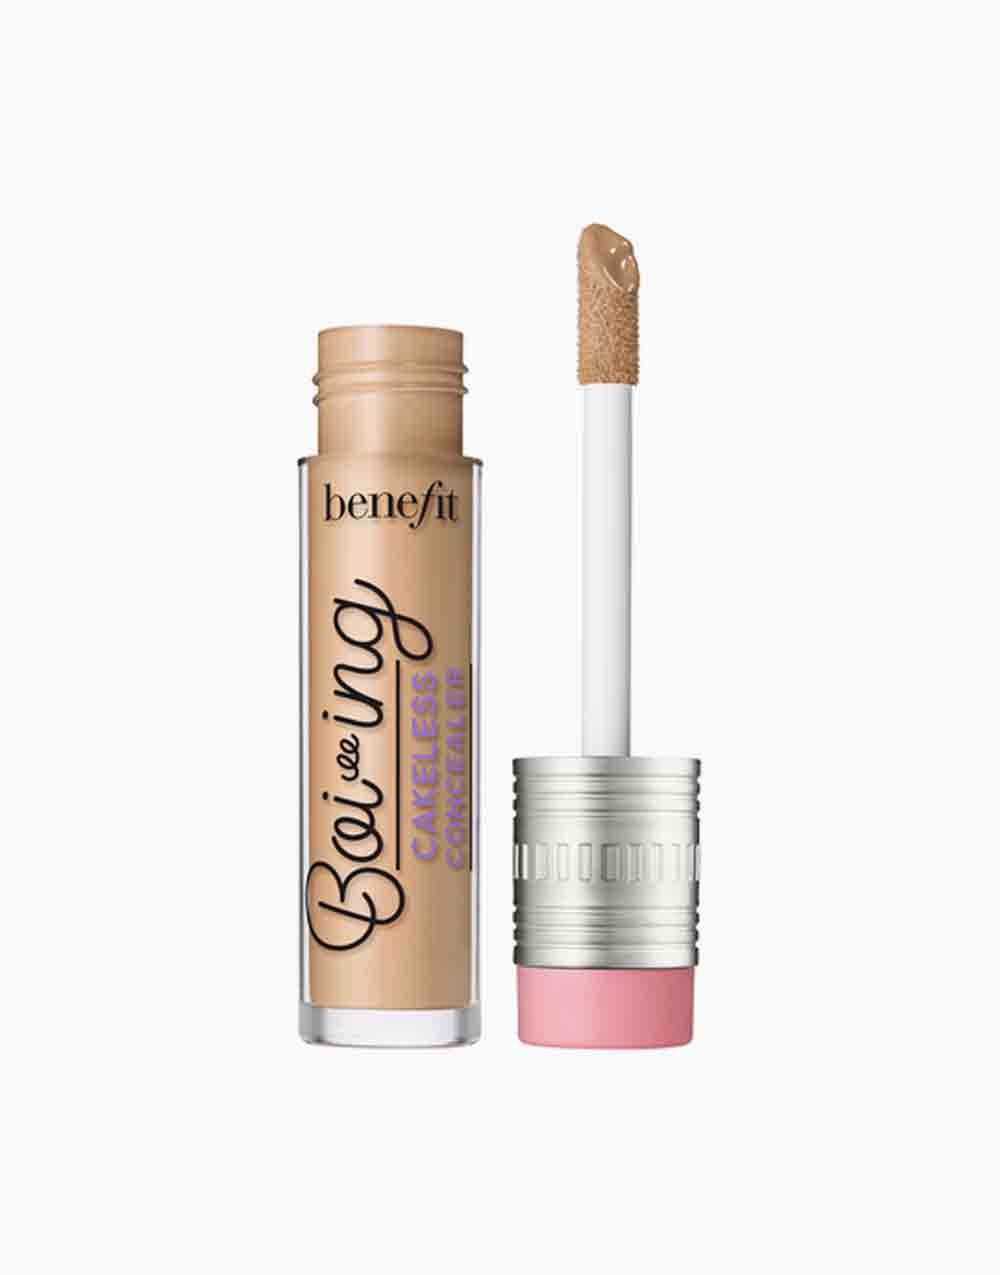 Boi-ing Cakeless Concealer by Benefit | Shade 6